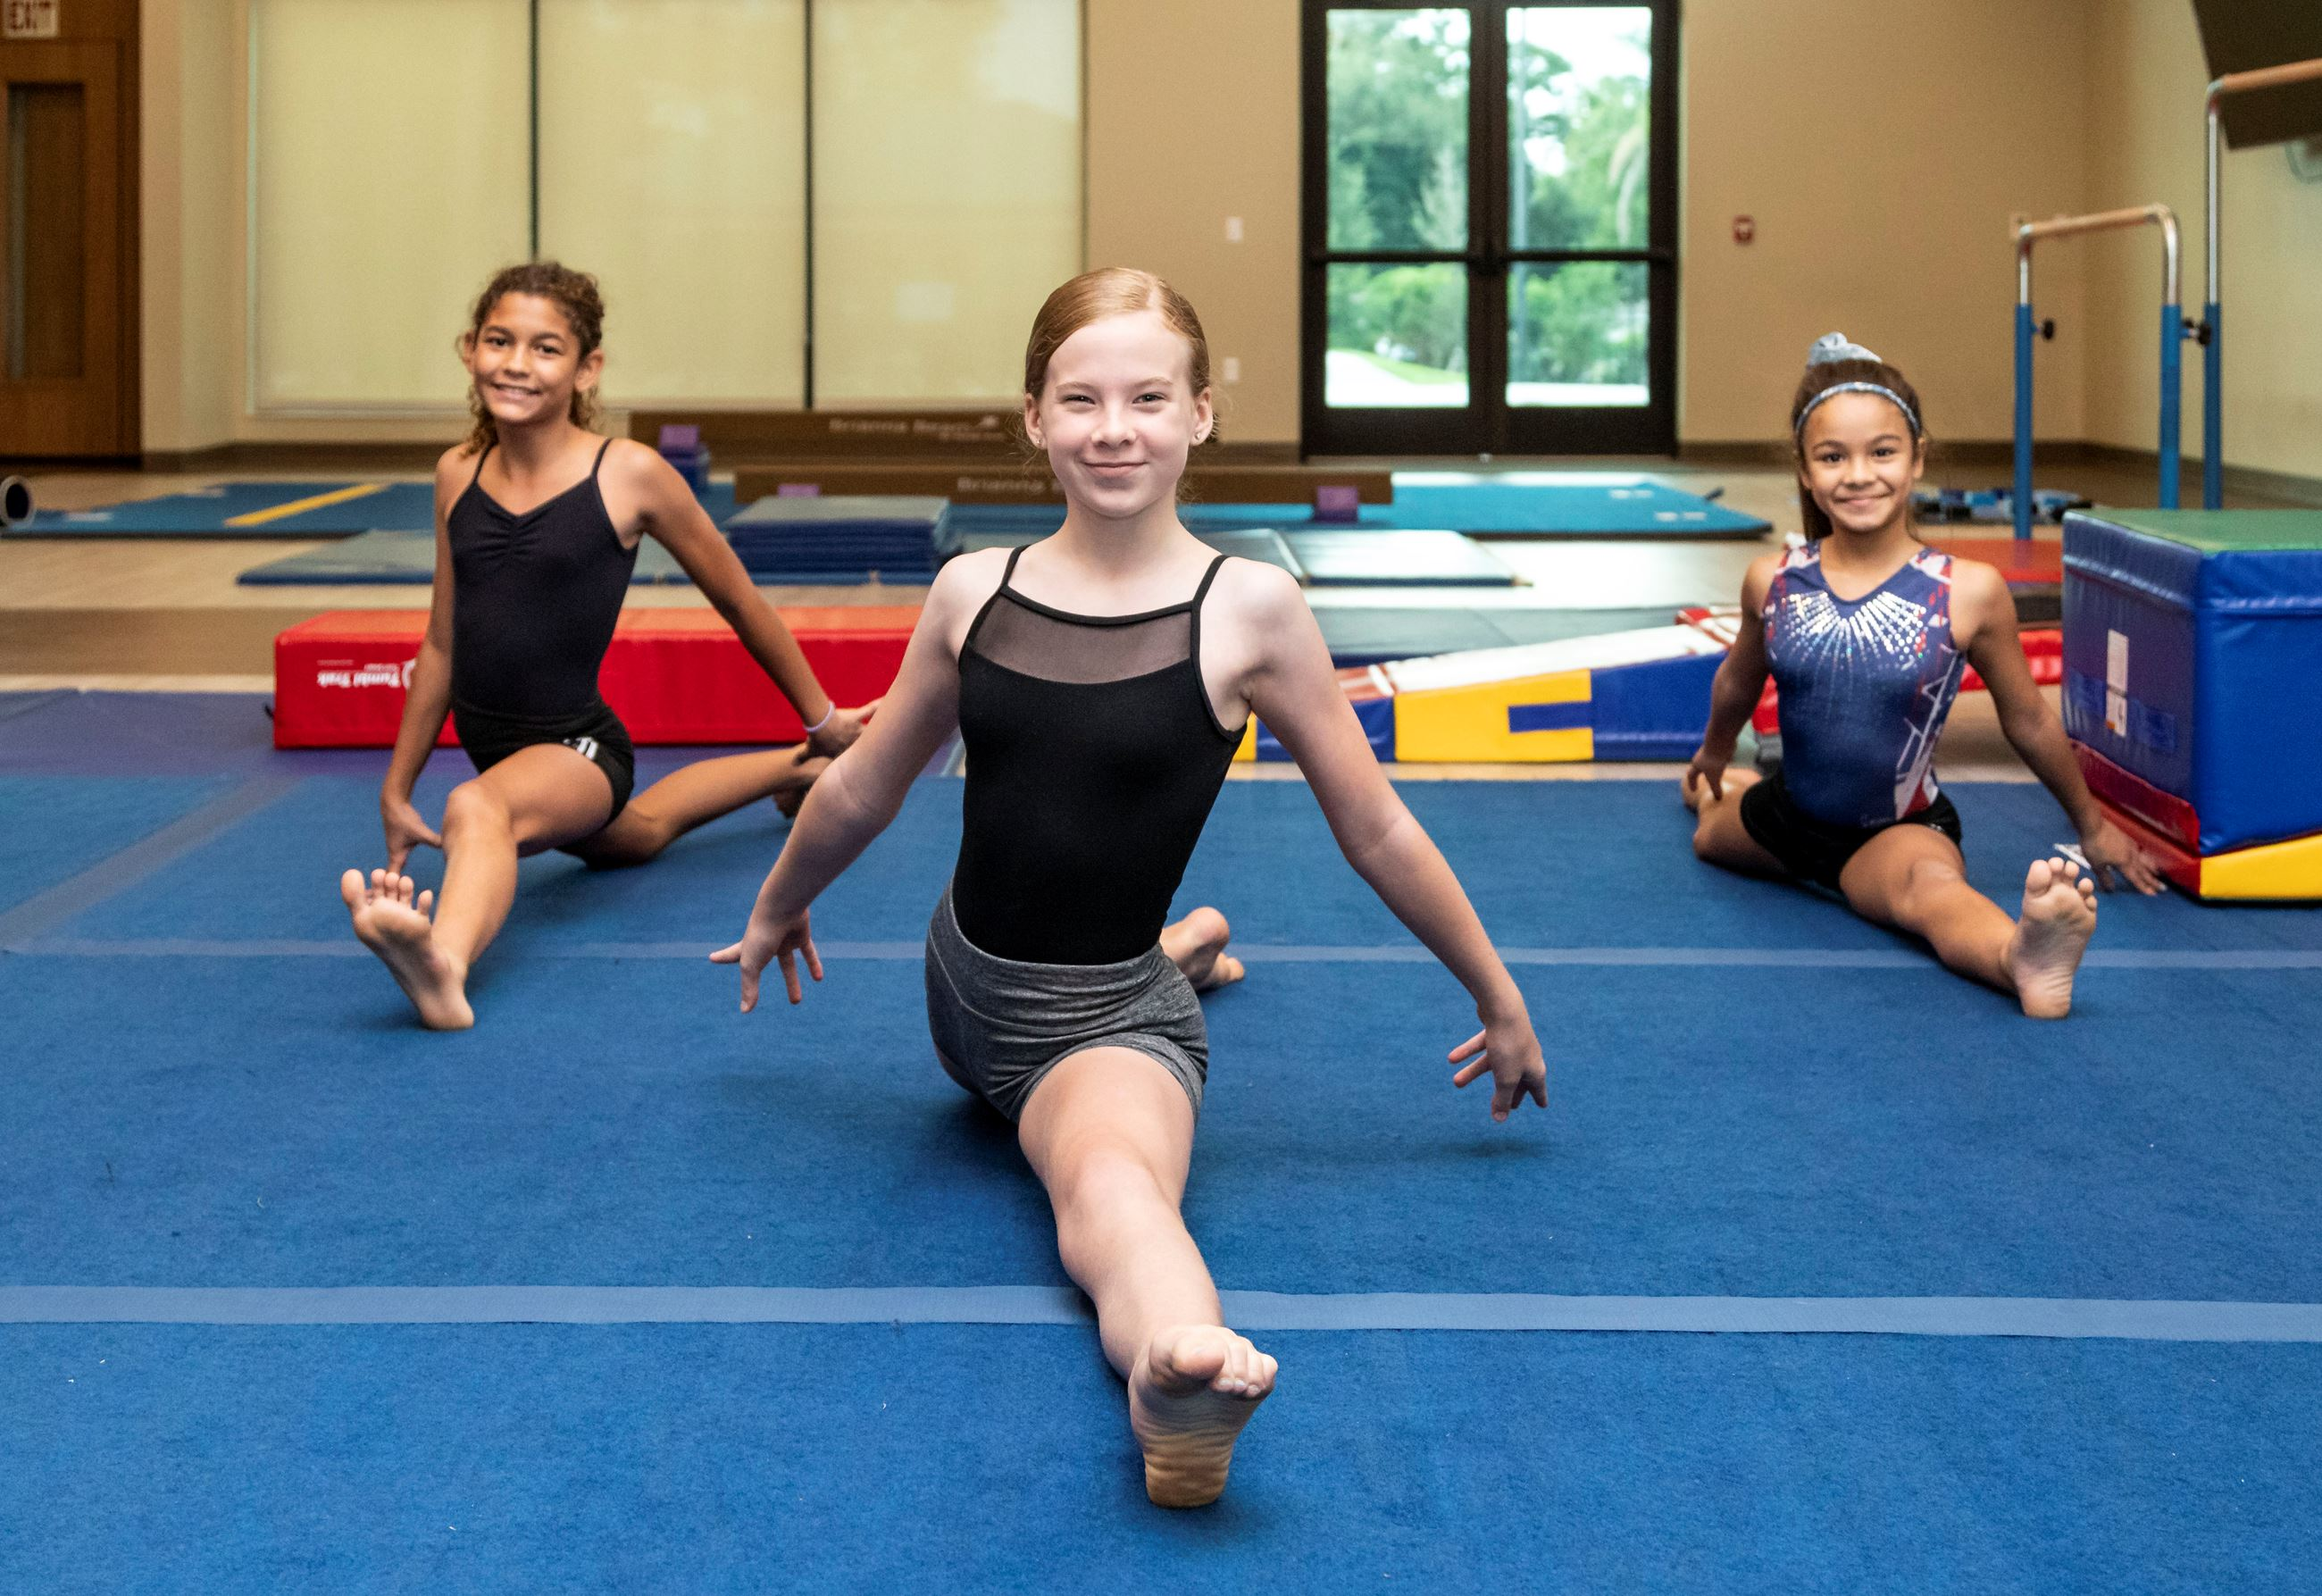 Girls Doing Splits In Gymnastics Class